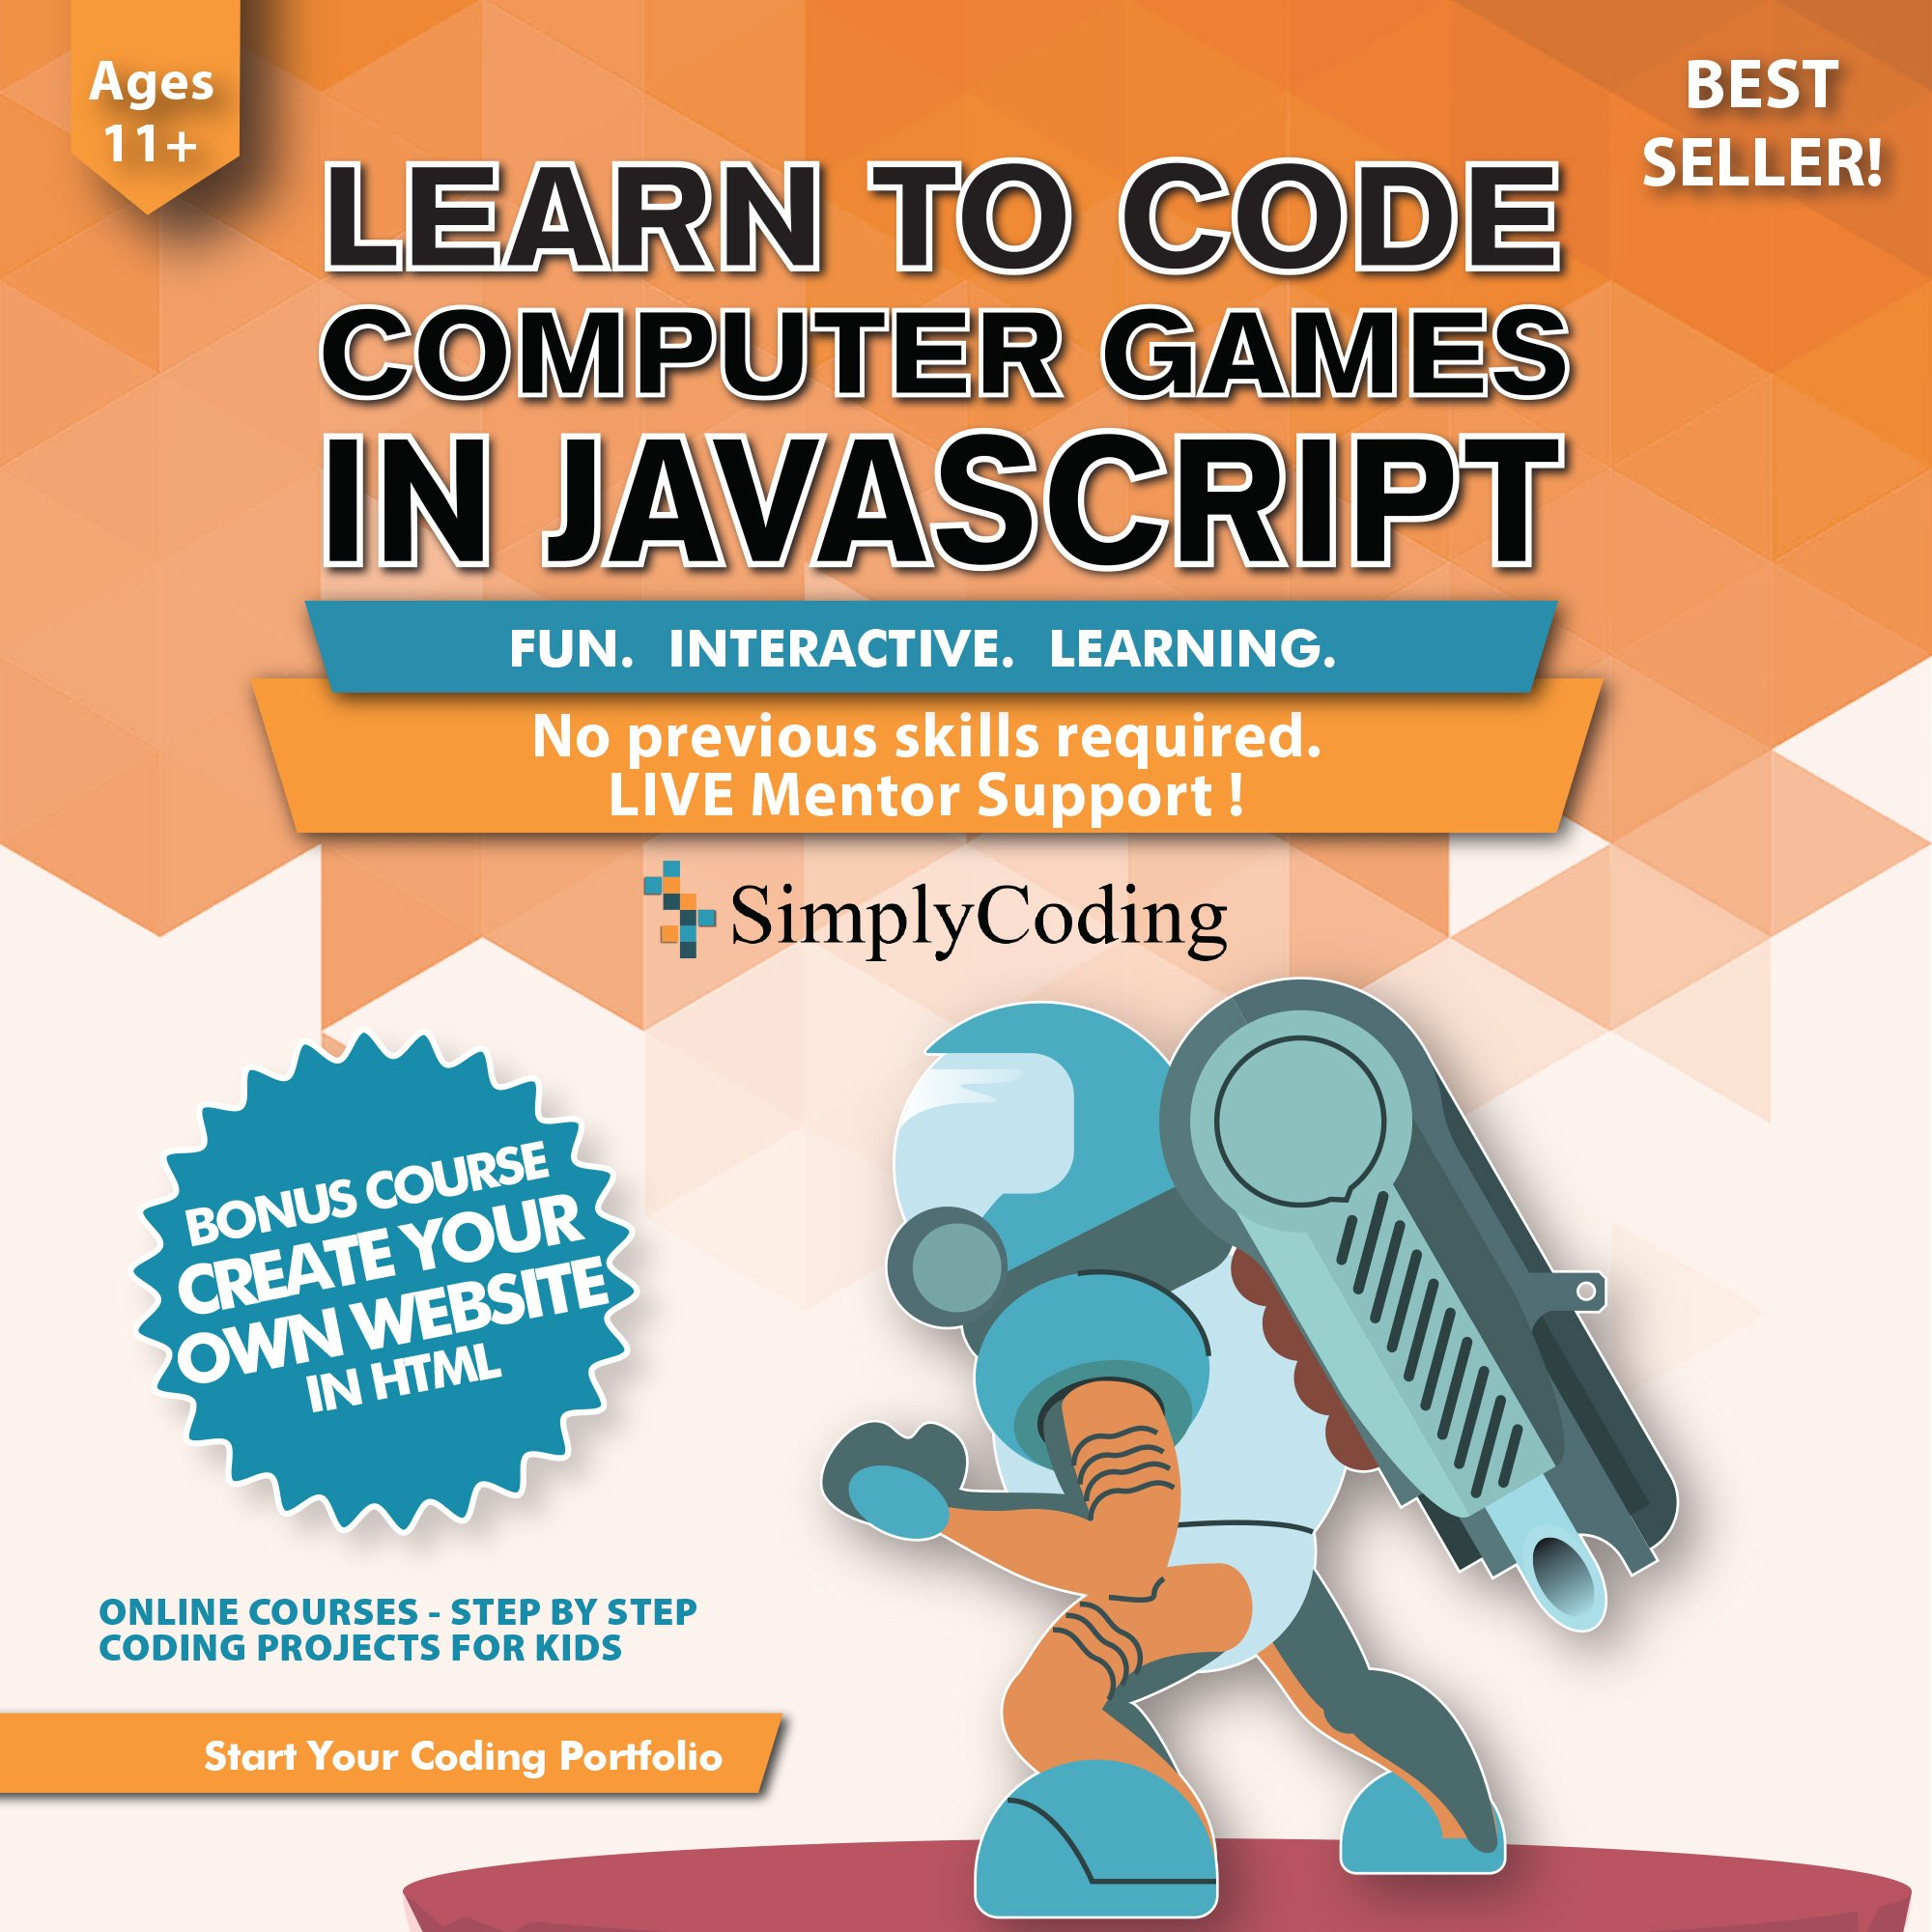 Simply Coding for Kids: Learn to Code Javascript - Video Game Design Coding Software - Computer Programming for Kids, Ages 11-18, (PC, Mac, Chromebook Compatible) by Simply Coding